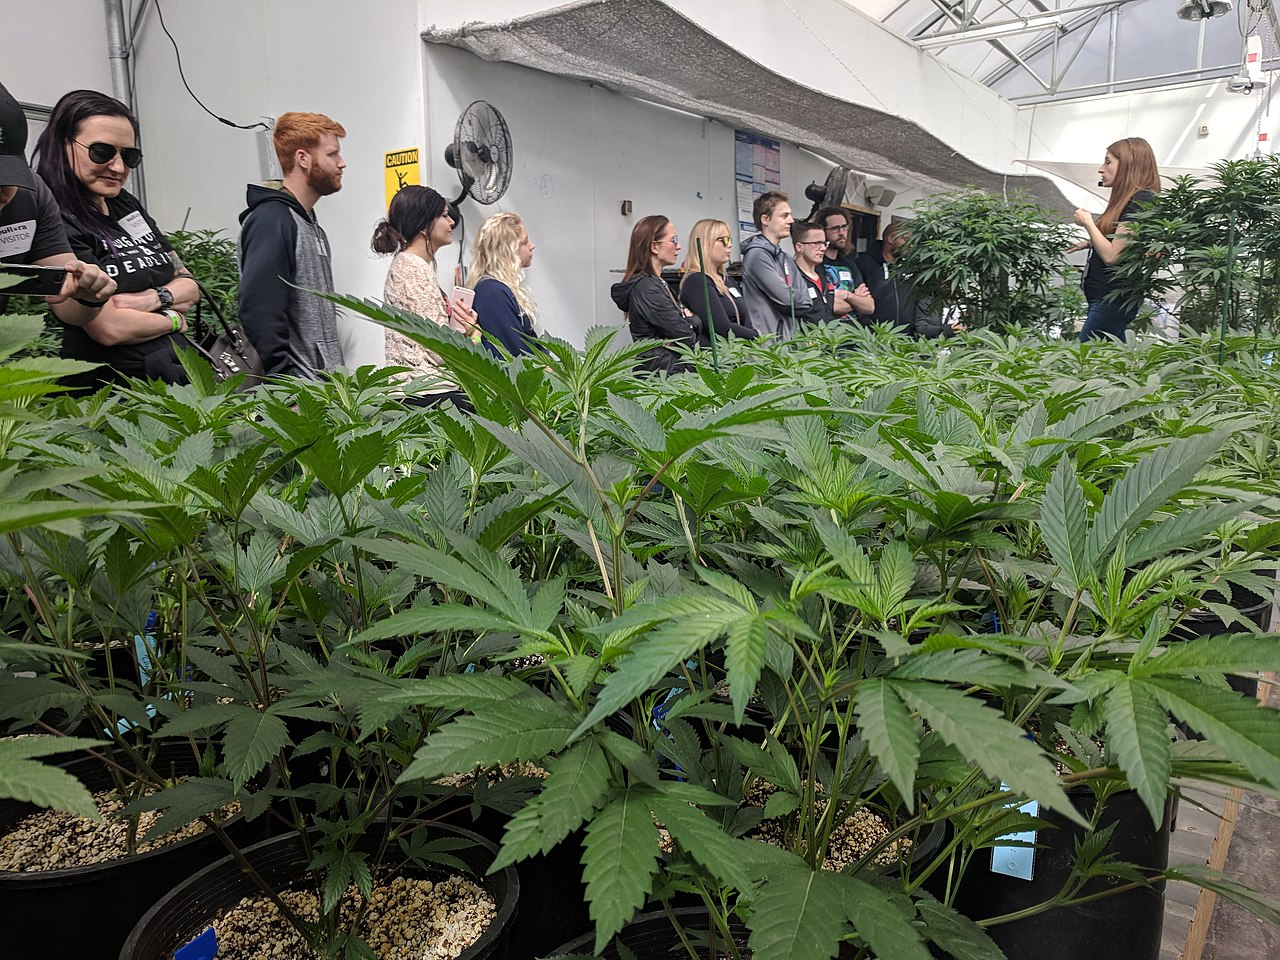 How Long Does The Marijuana Growing Cycle Take In Greenhouse